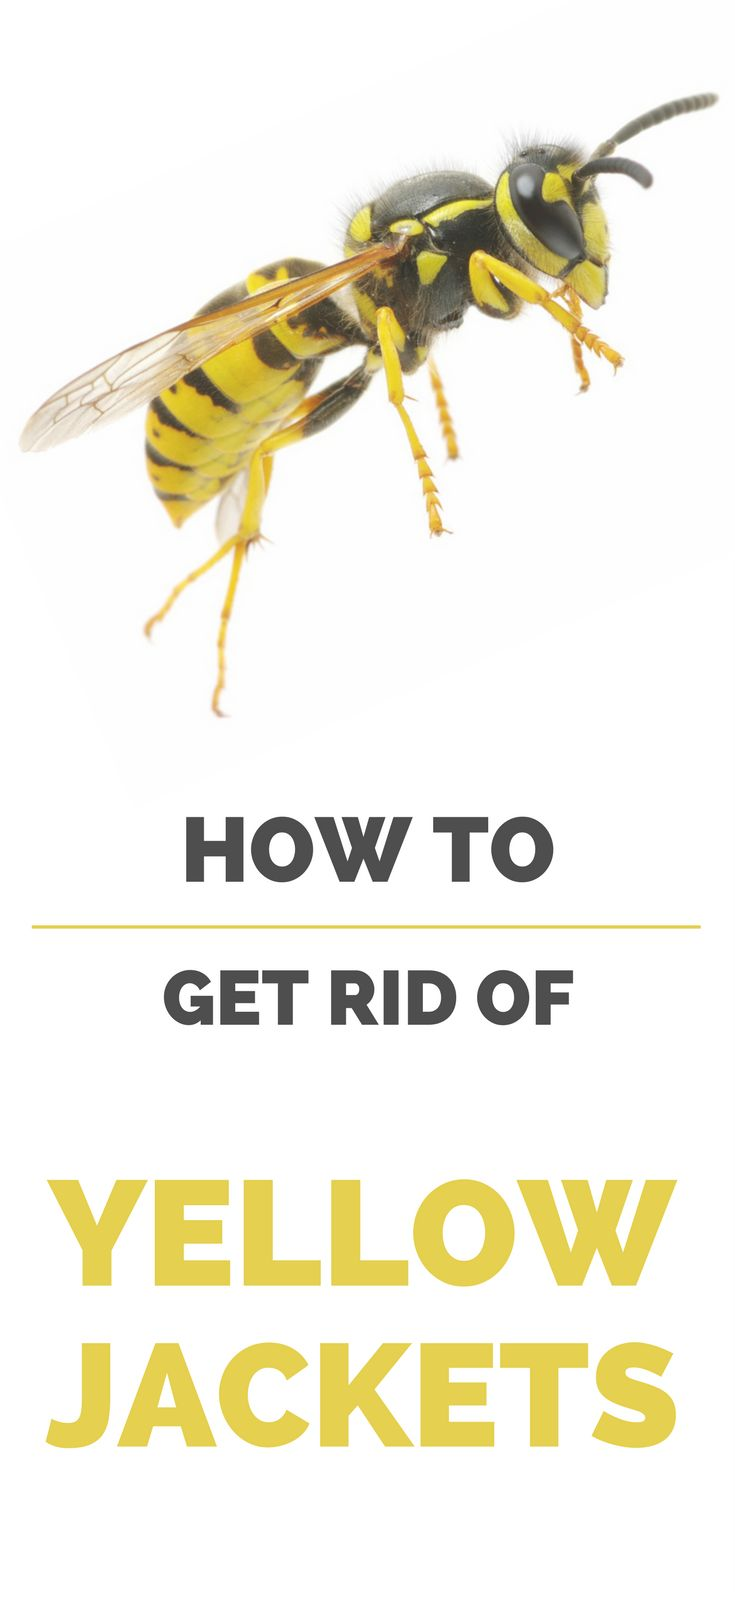 Small yellow jackets in the ground - How To Get Rid Of Yellow Jackets